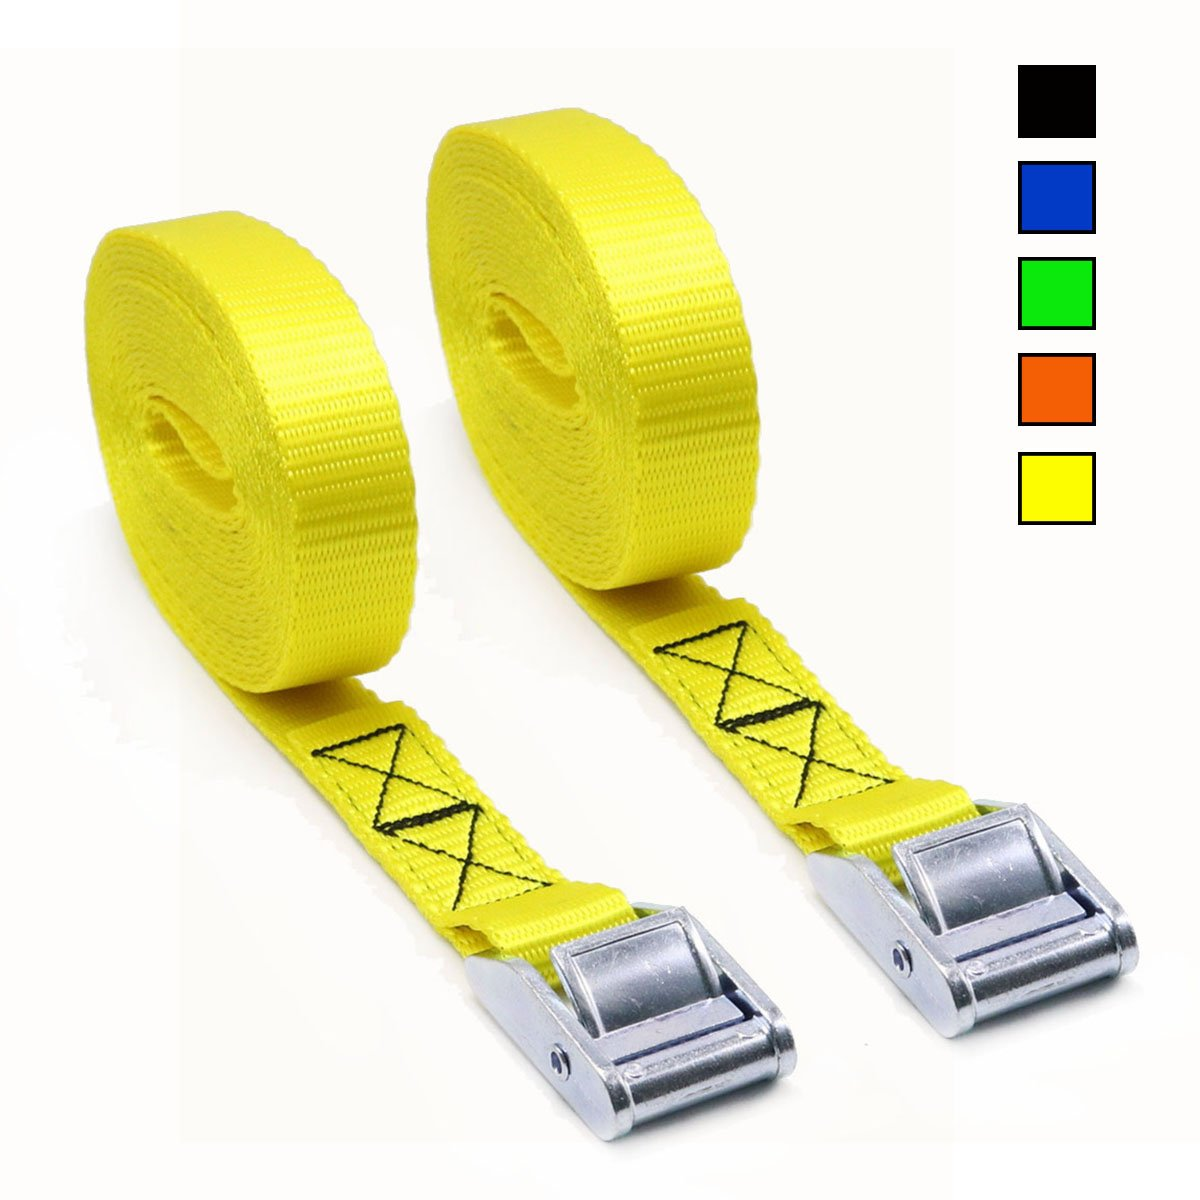 Xiangle Premium Cam Buckle Lashing Strap Tie Down Straps 8-foot-by-1-inch up to 1000lbs,2 Pack (16FT, 2pk Yellow)